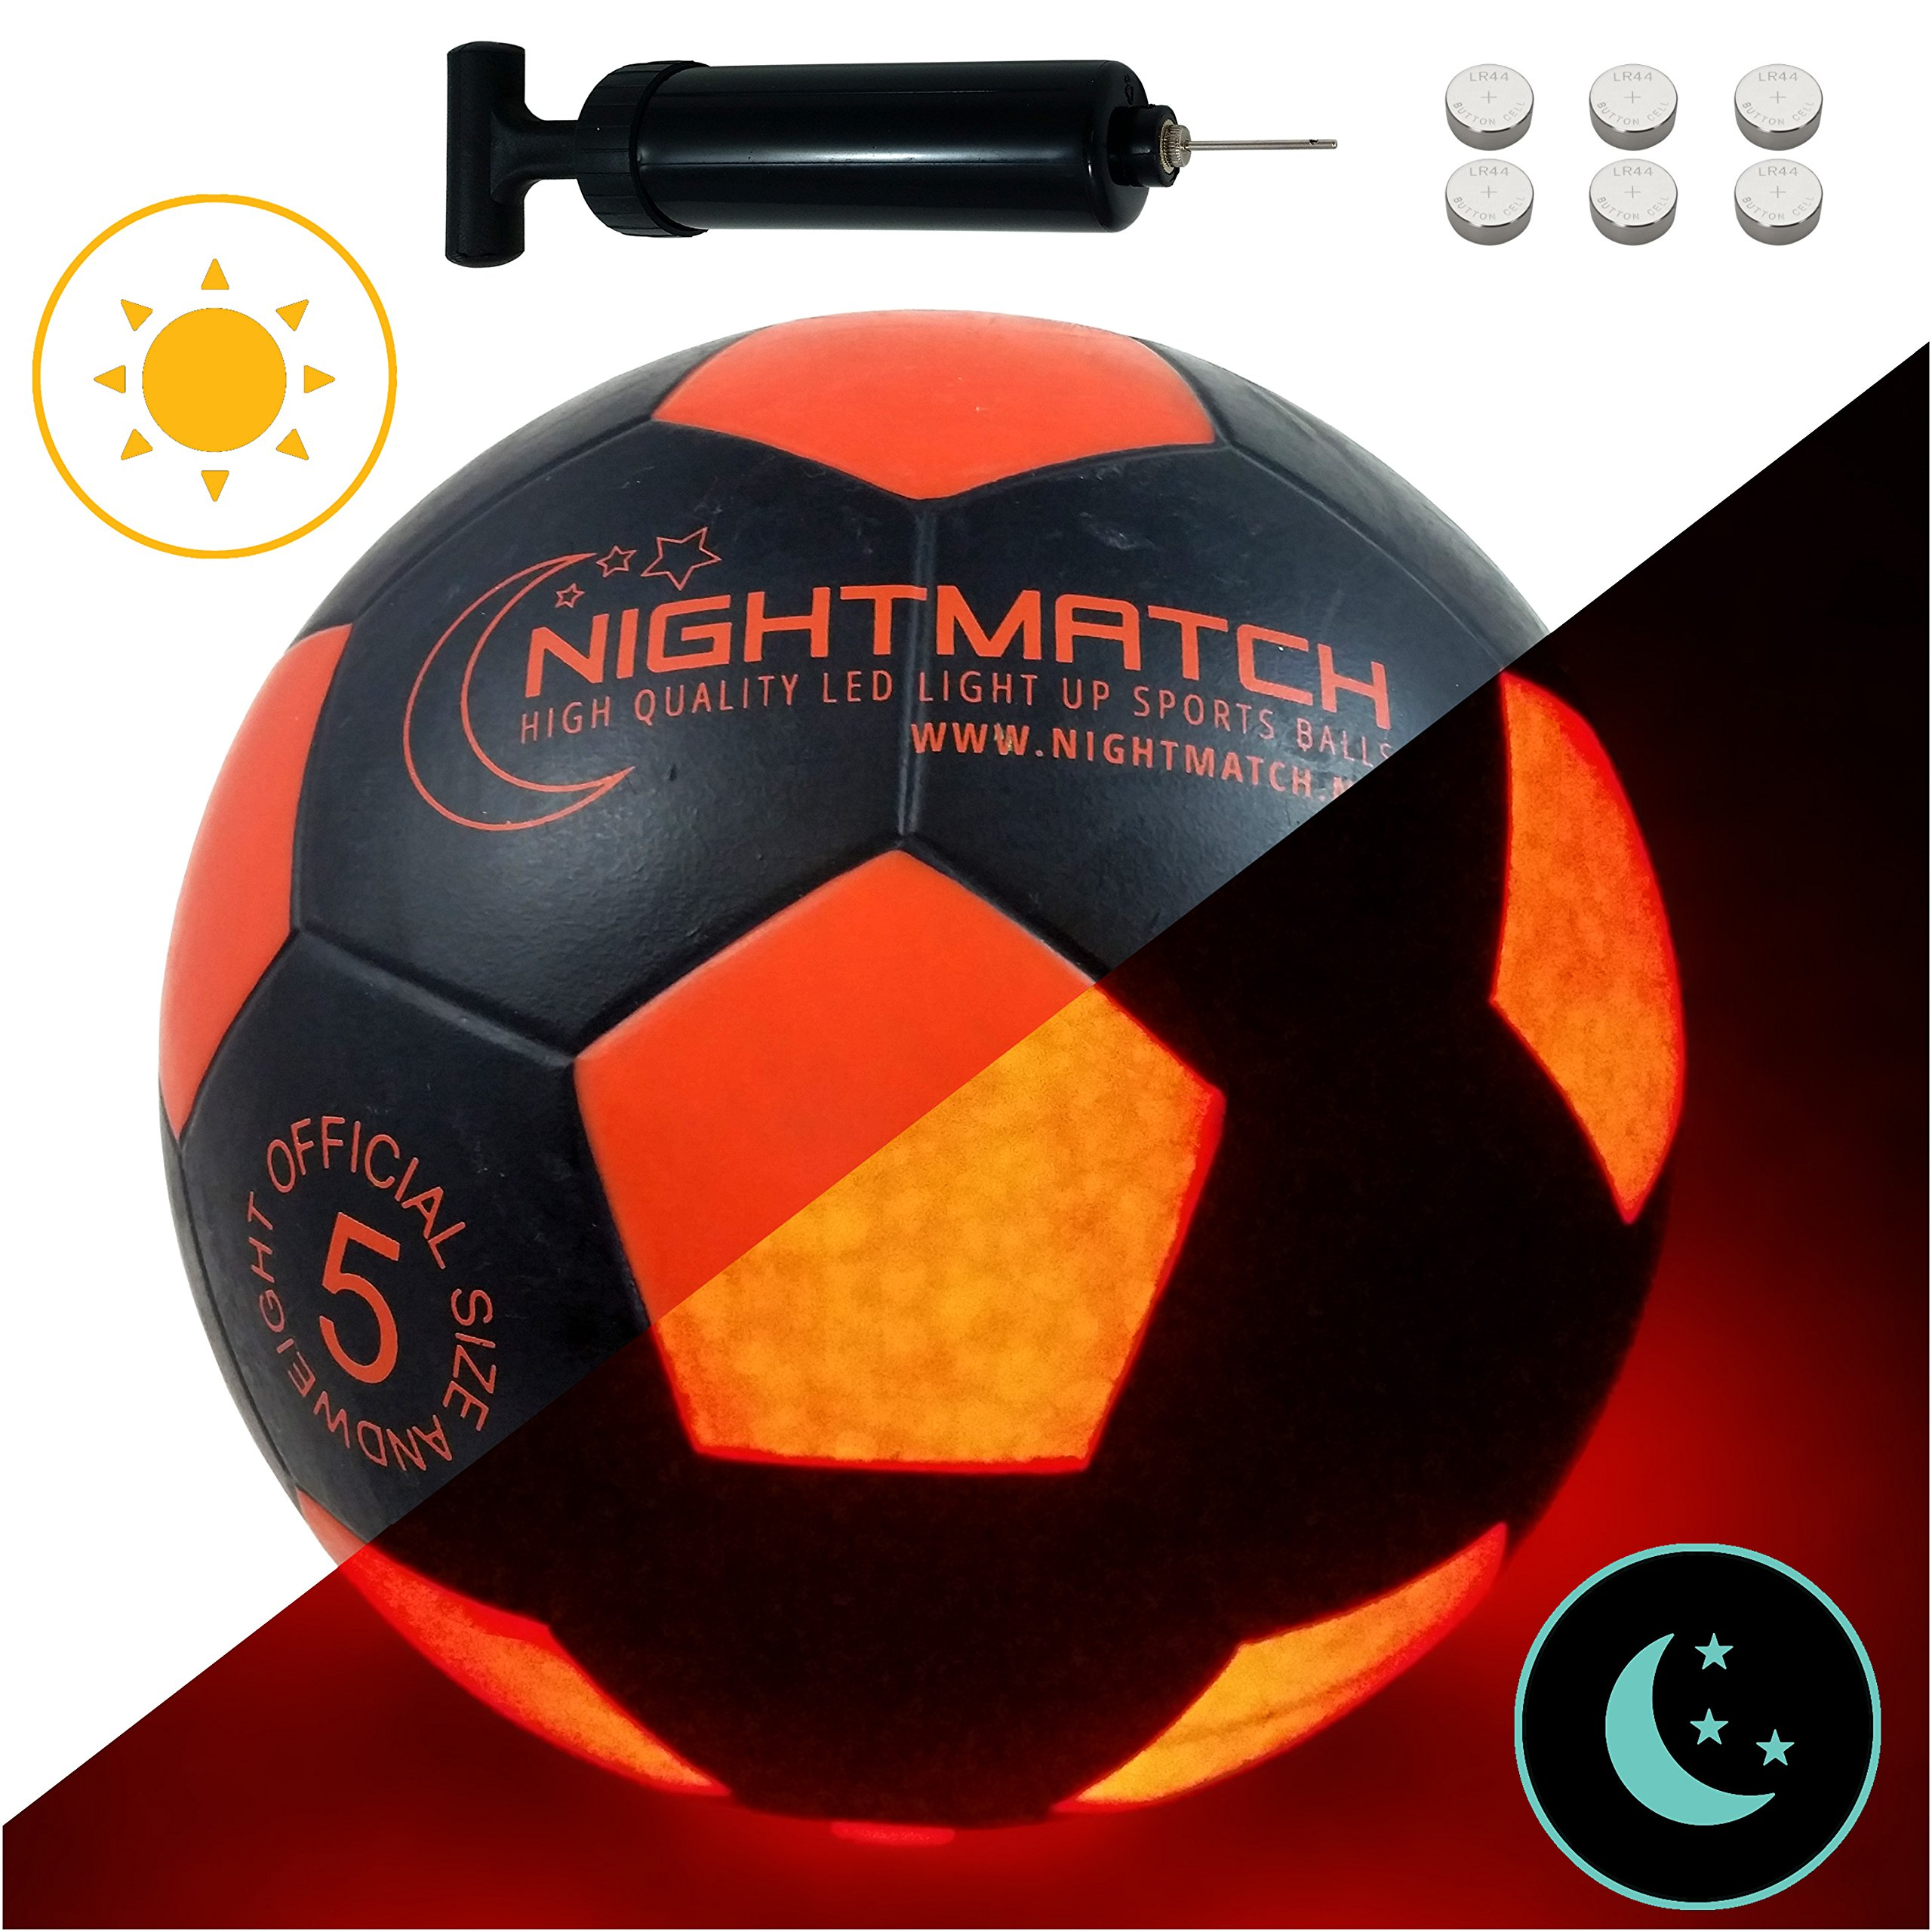 NIGHTMATCH Light Up Soccer Ball INCL. Ball Pump and Spare Batteries - Black Edition - Inside LED Lights up When Kicked - Glow in The Dark Soccer Ball - Size 5 - Official Size & Weight - Black/Orange by NIGHTMATCH